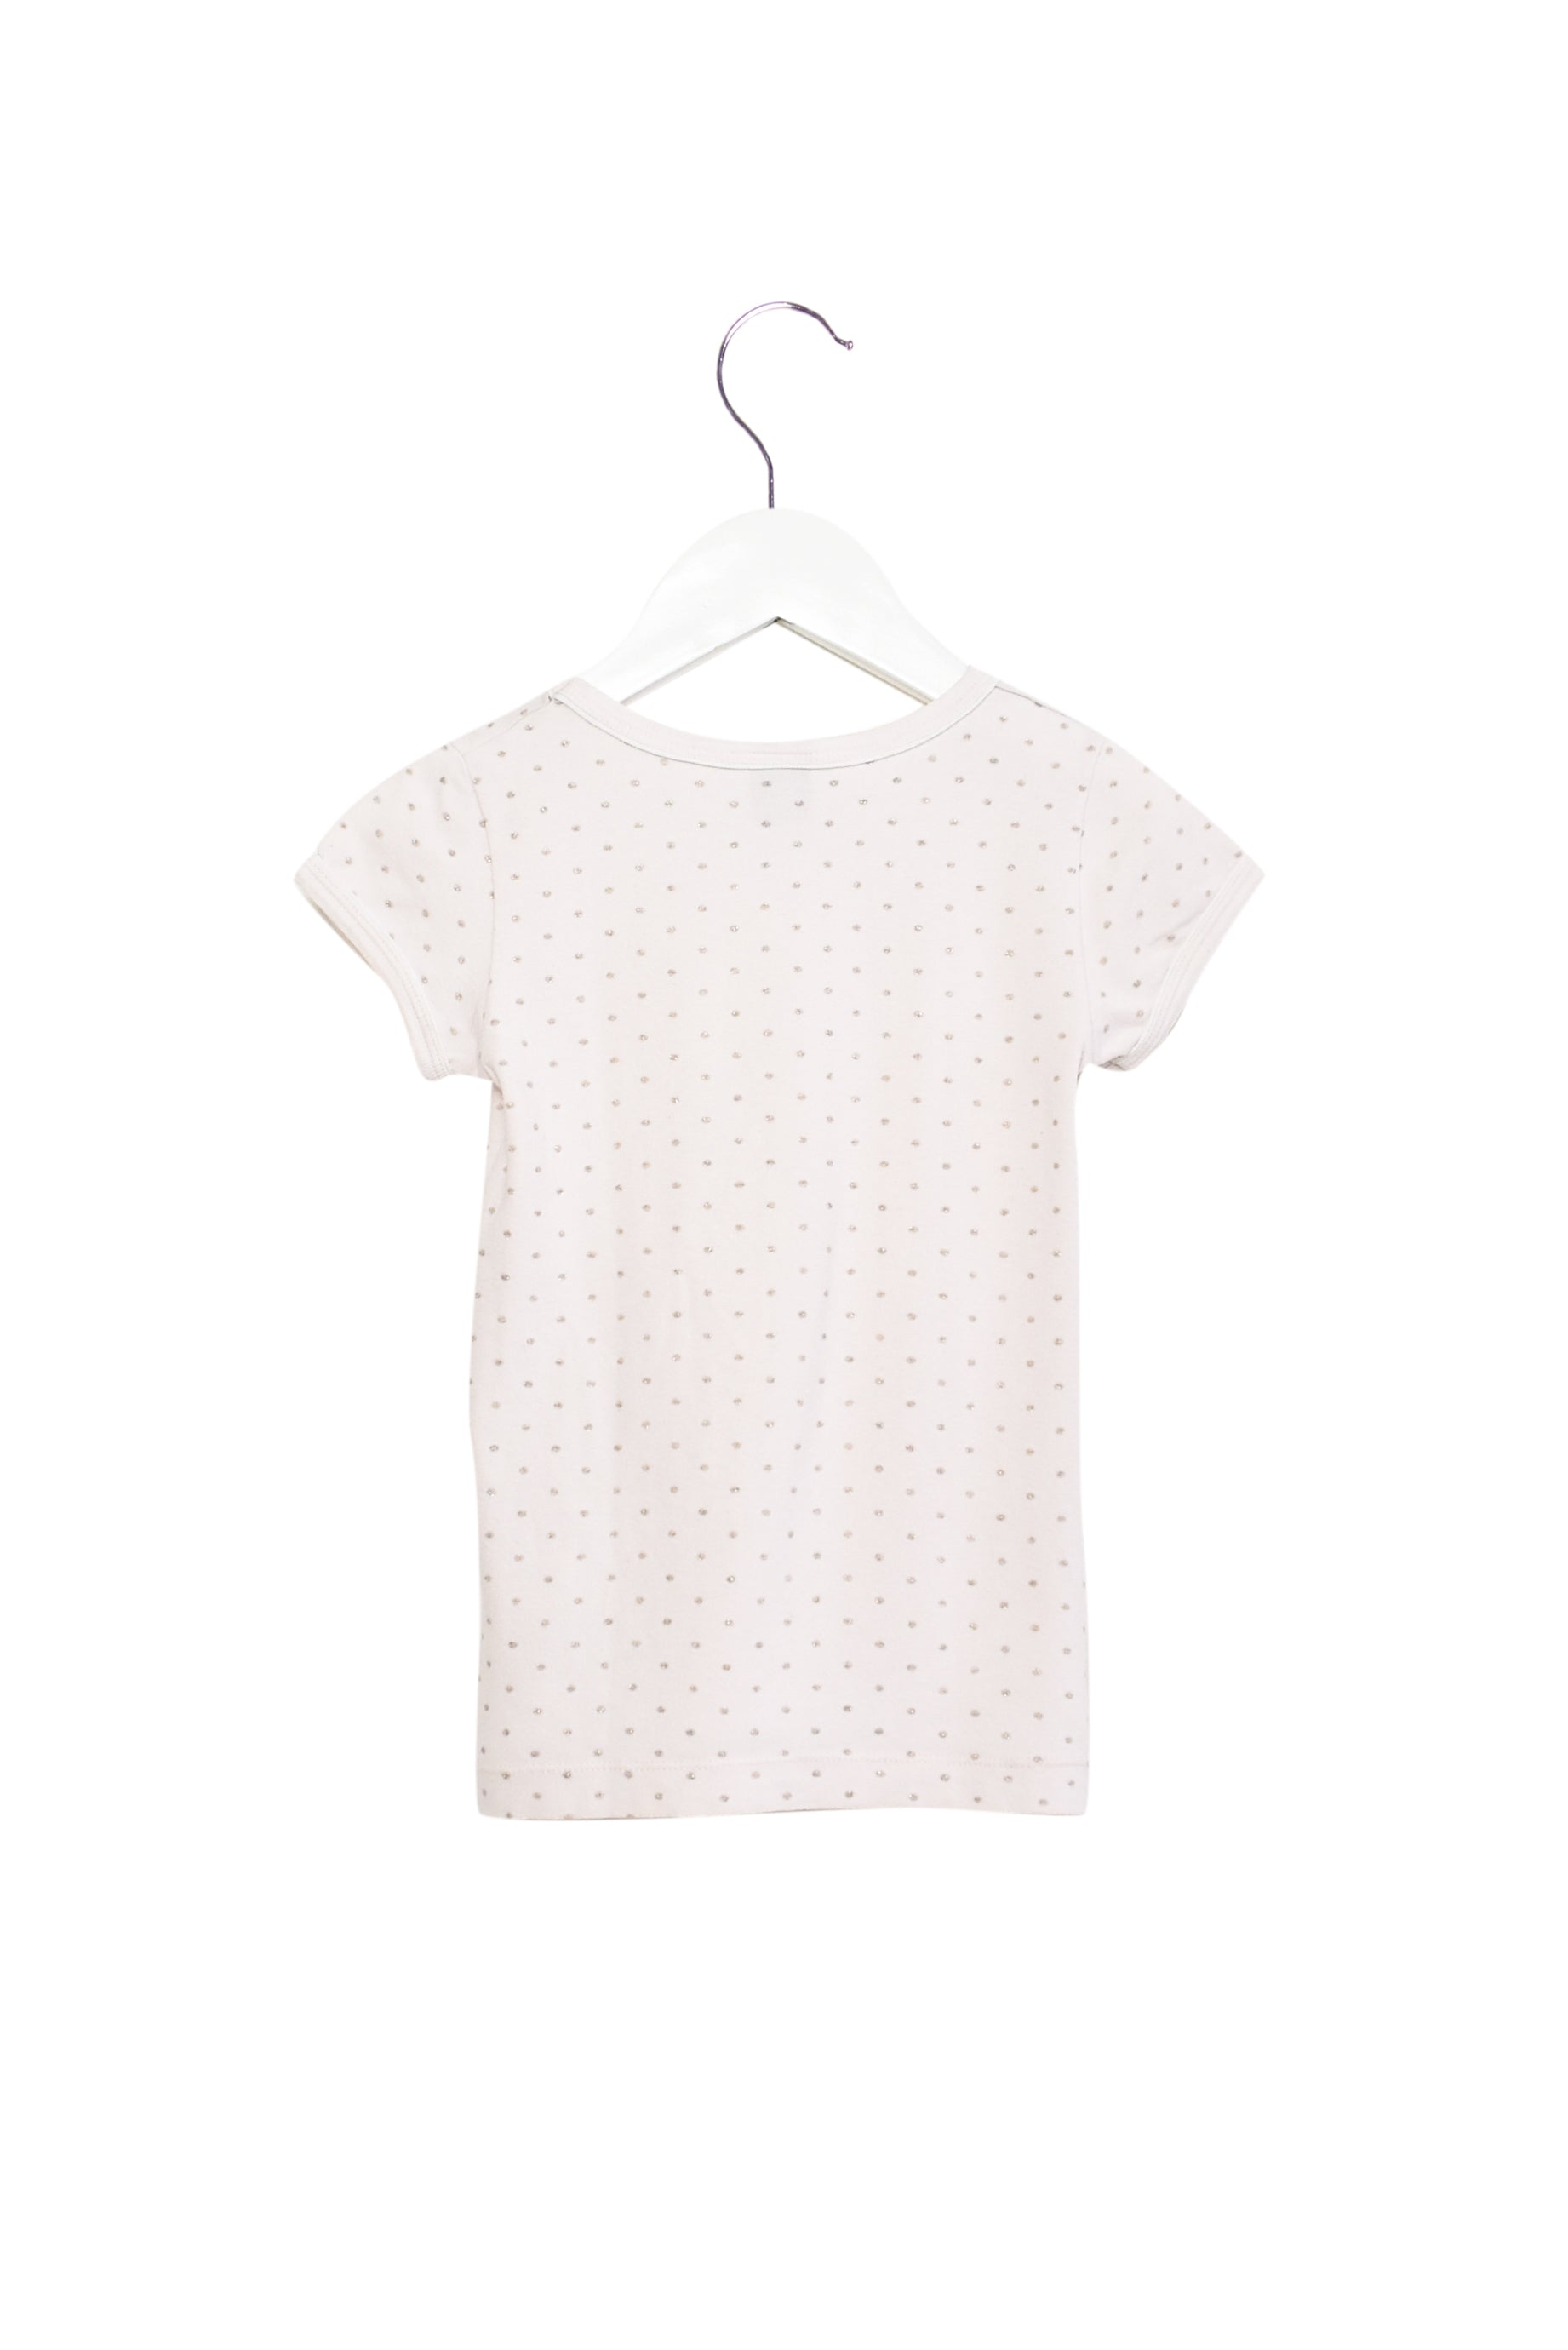 10011901 Petit Bateau Kids ~ T-Shirt 6T at Retykle